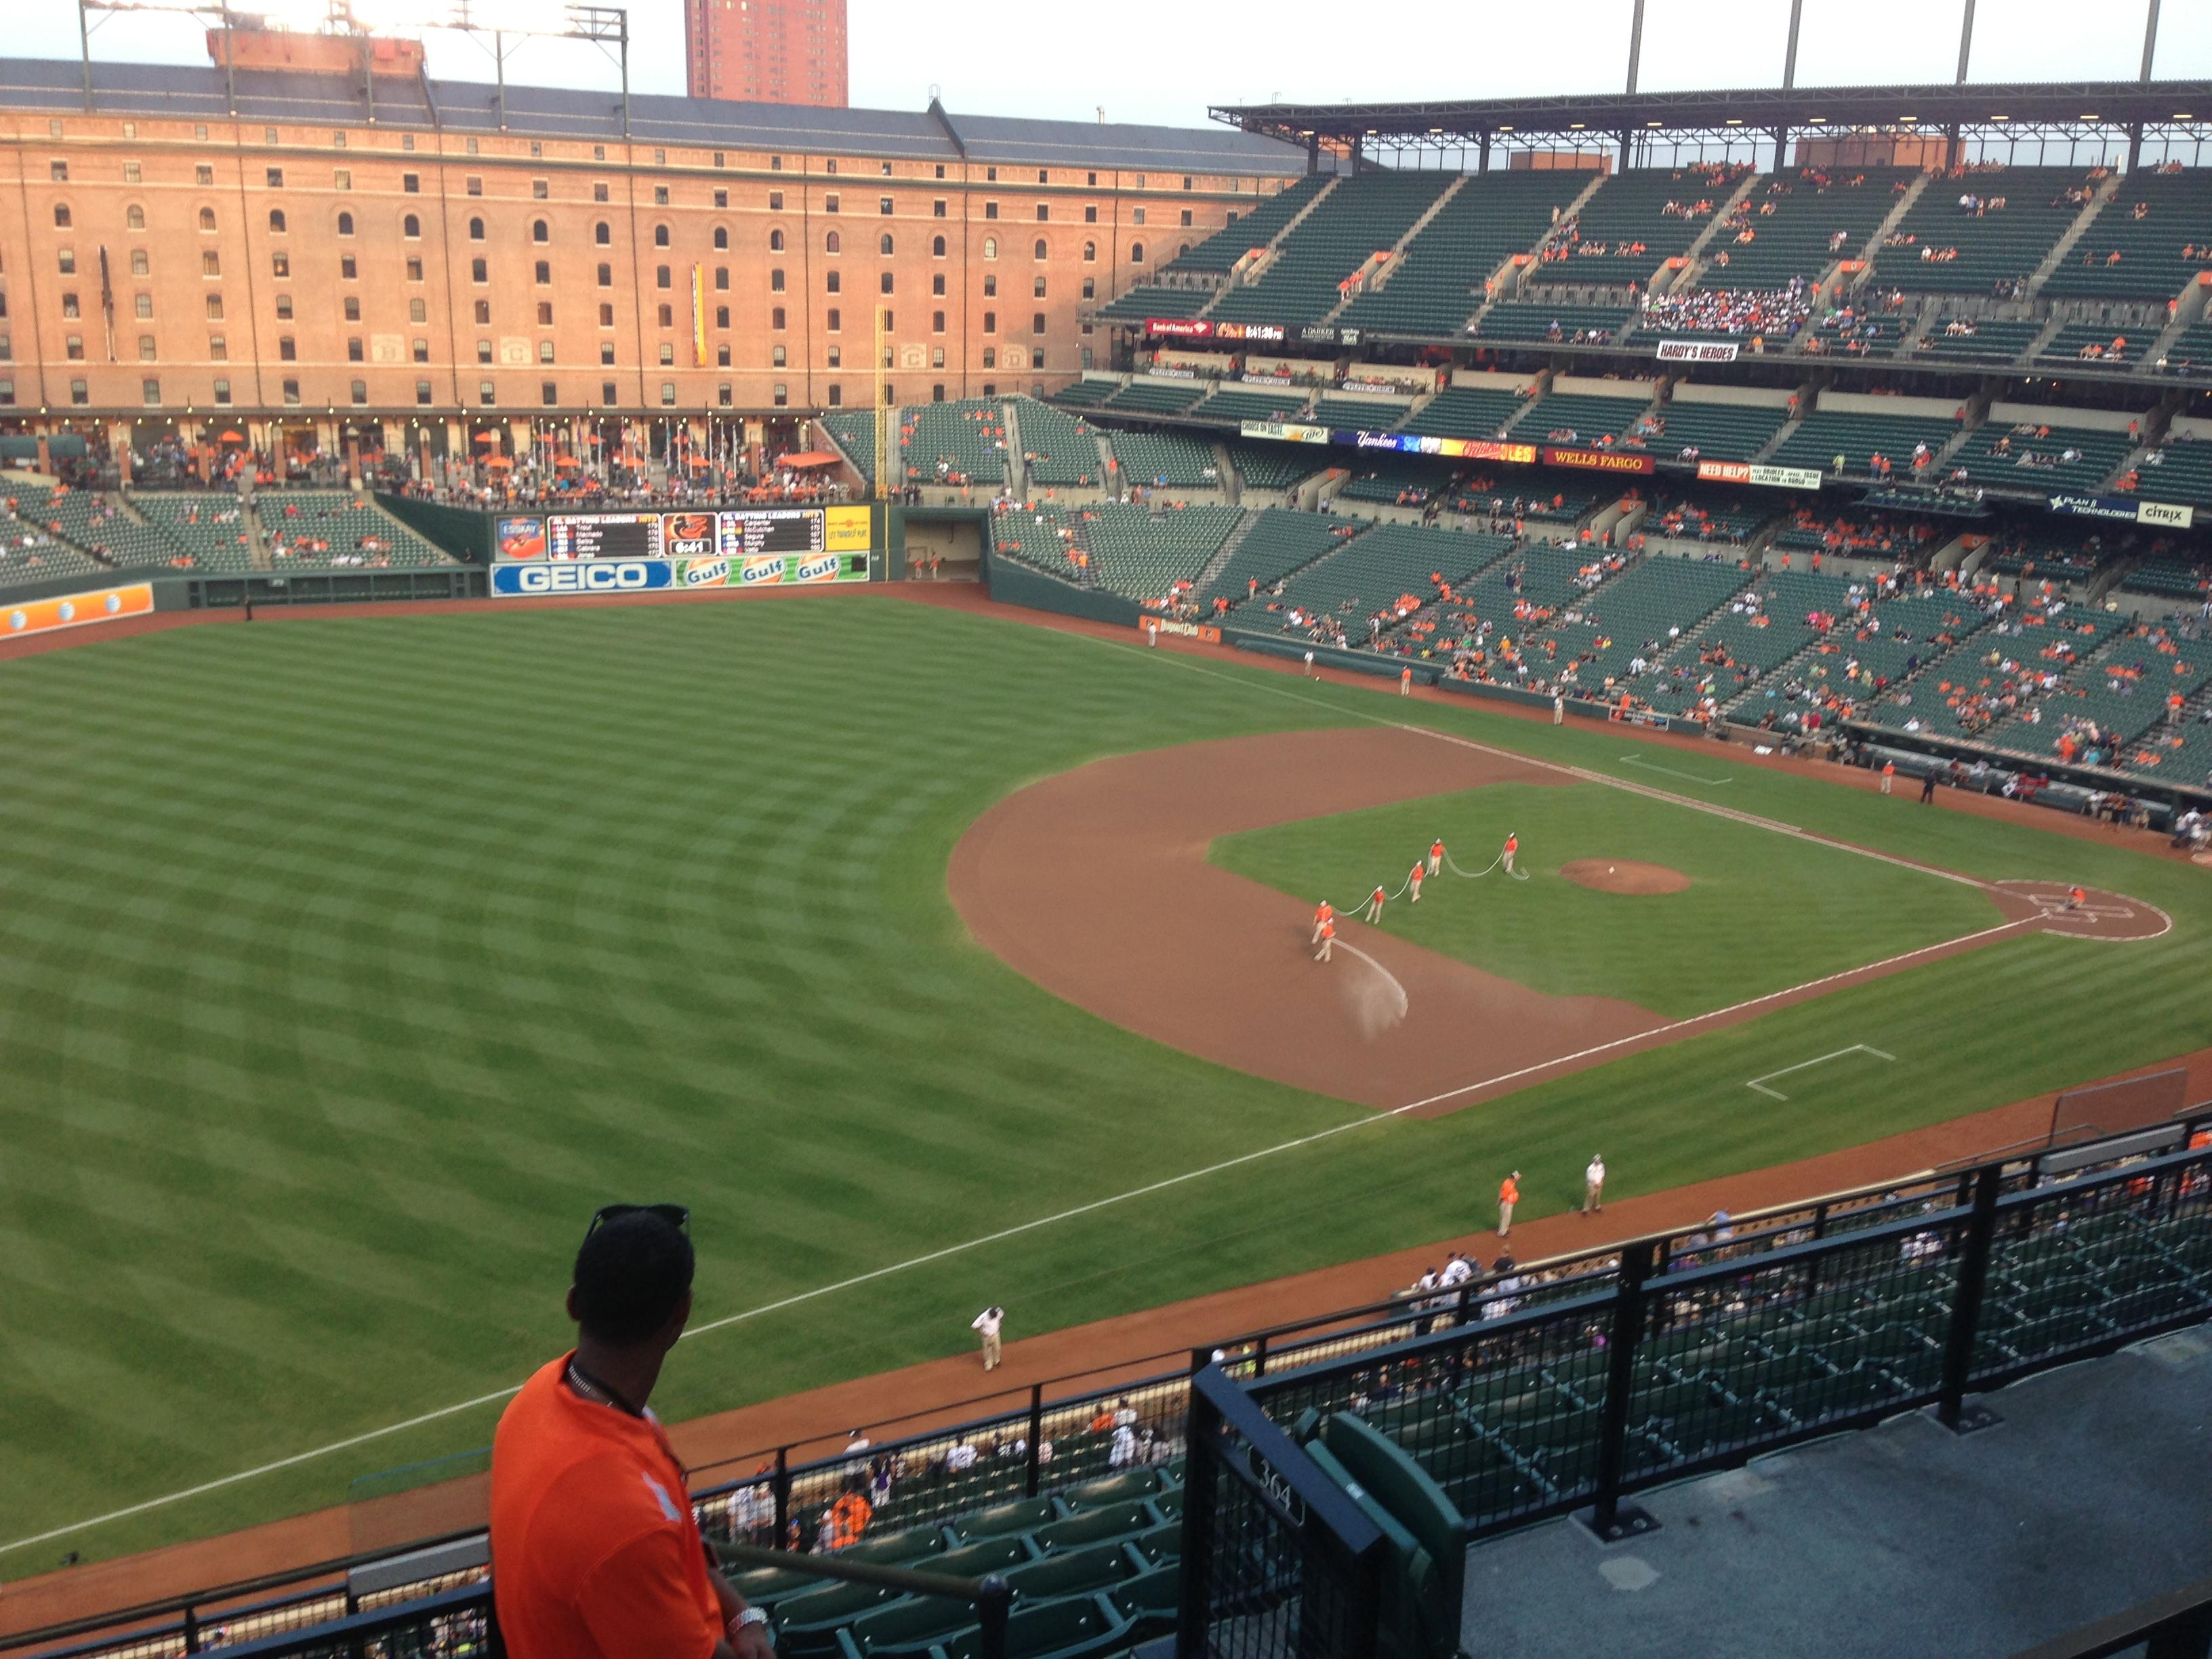 Oriole Park at Camden Yards Section 364 Row 11 Seat 10